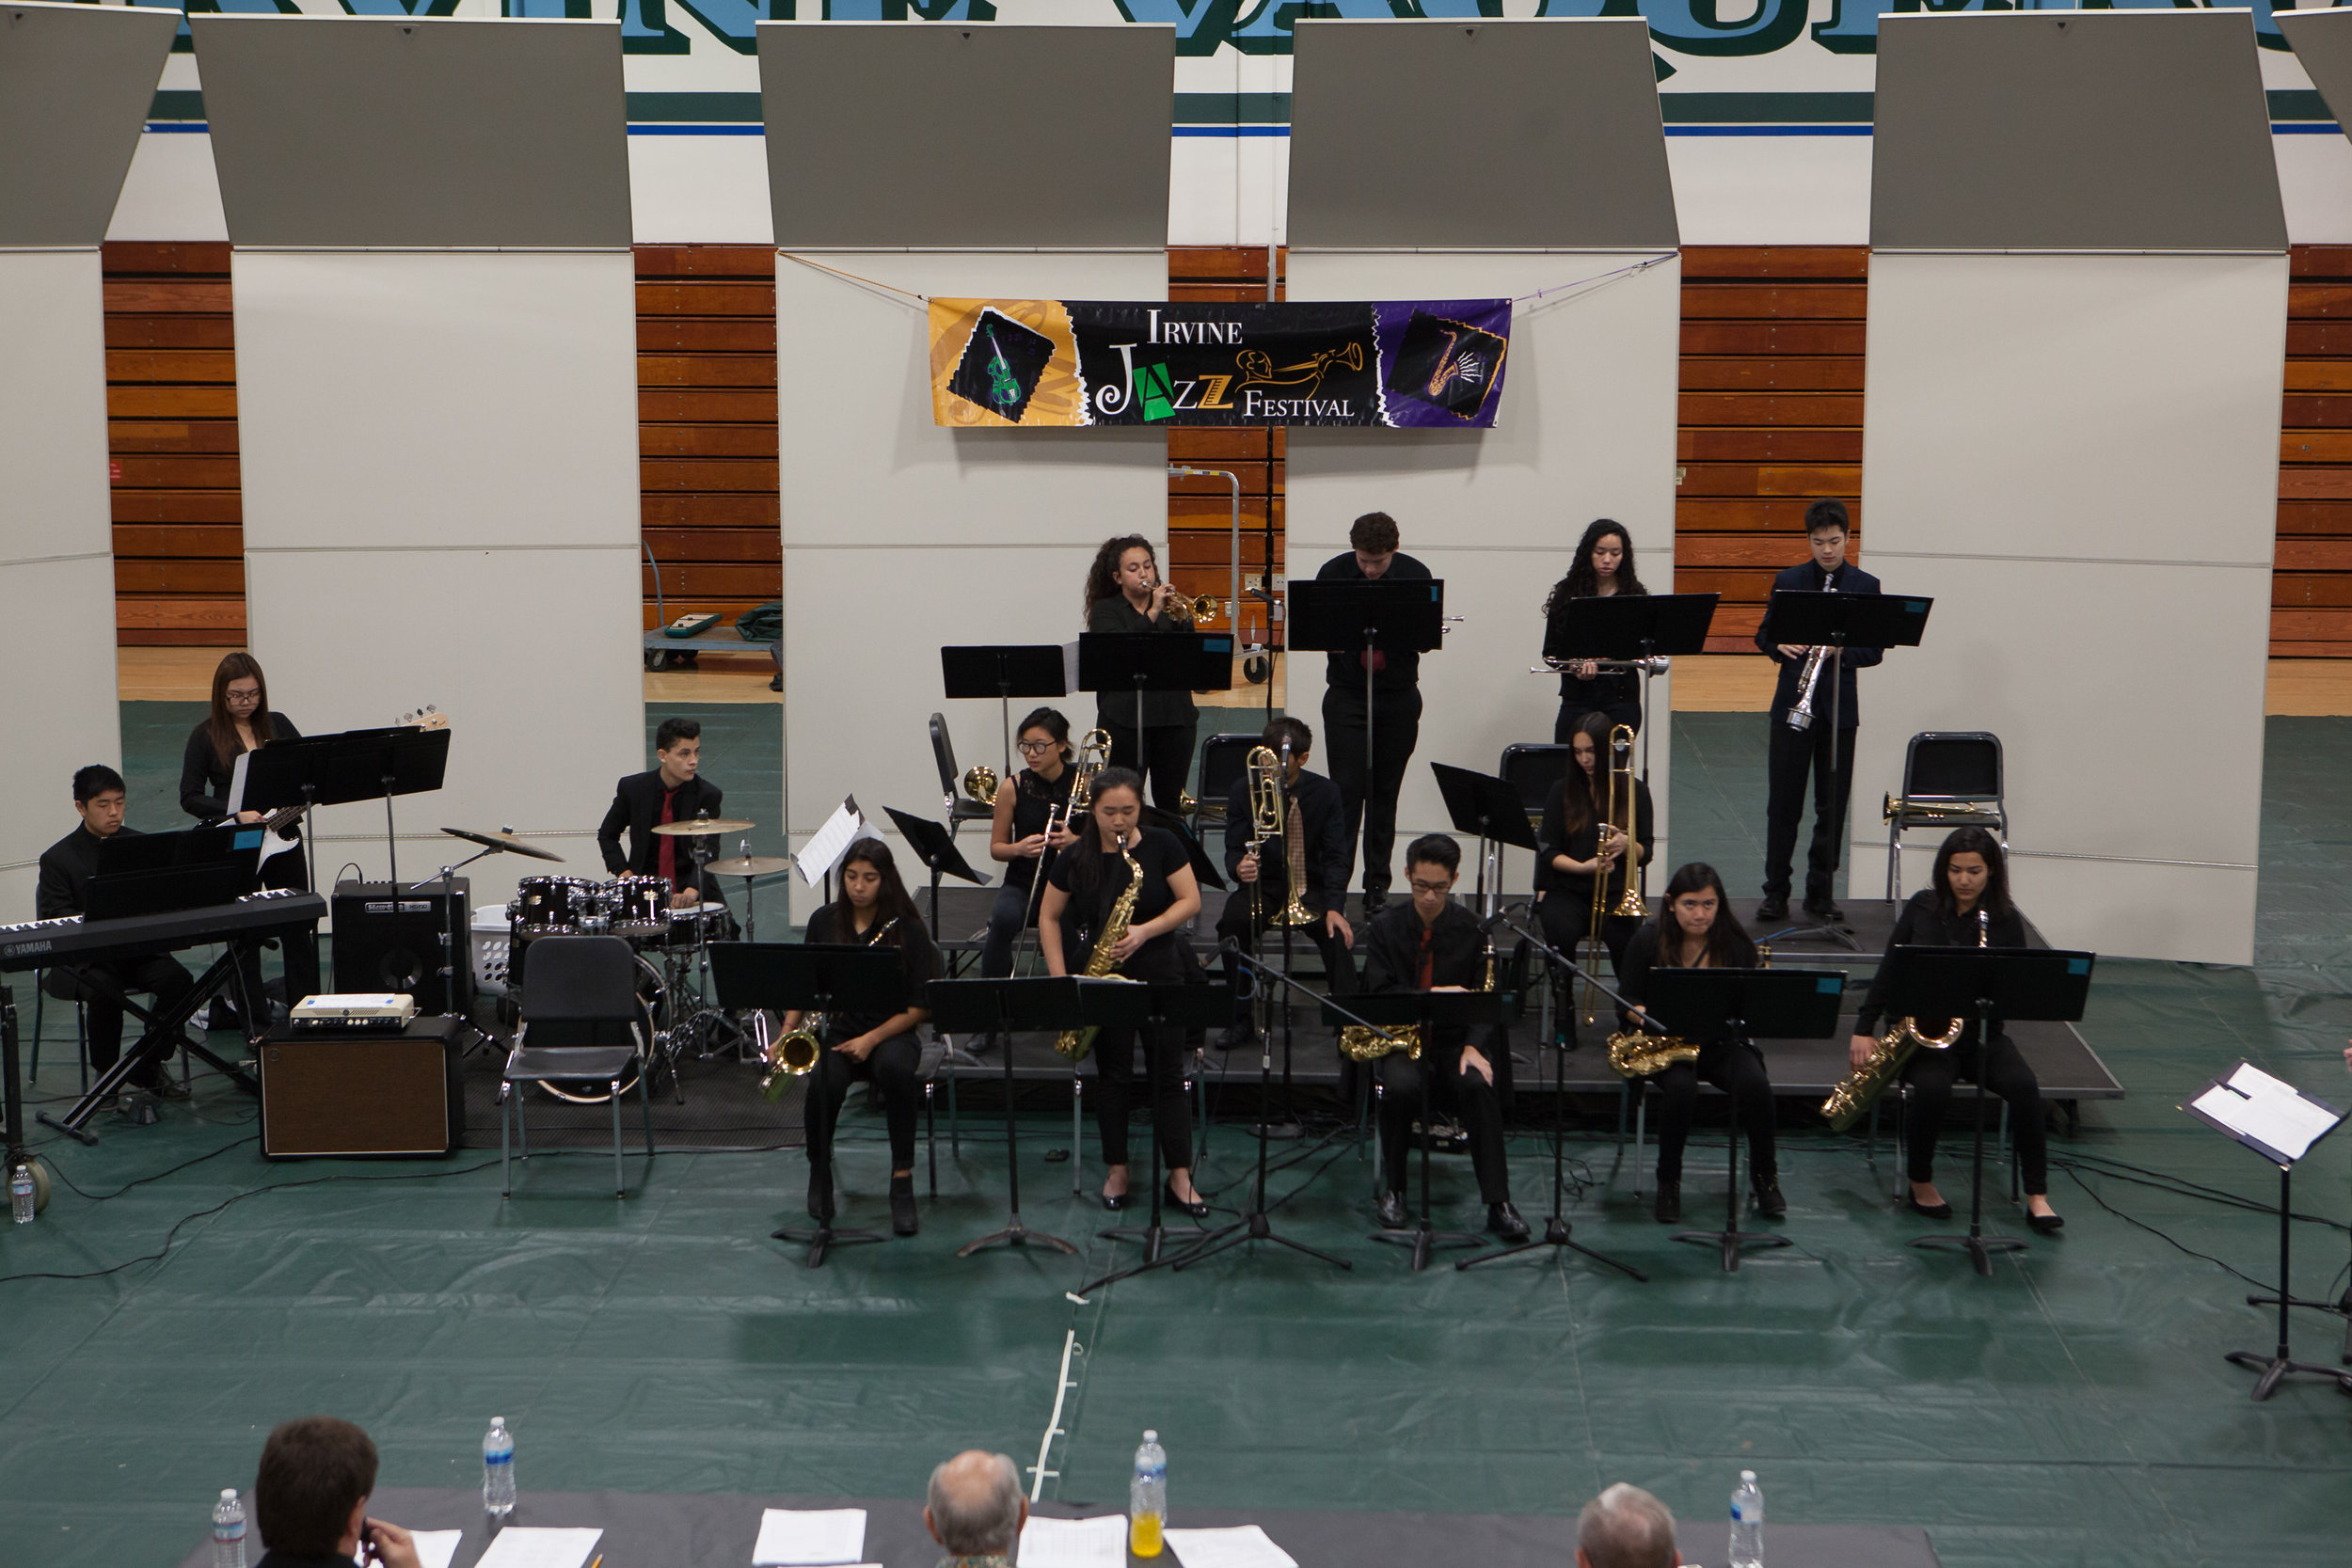 The Jazz Band @ Irvine H.S. Click image for more photos.